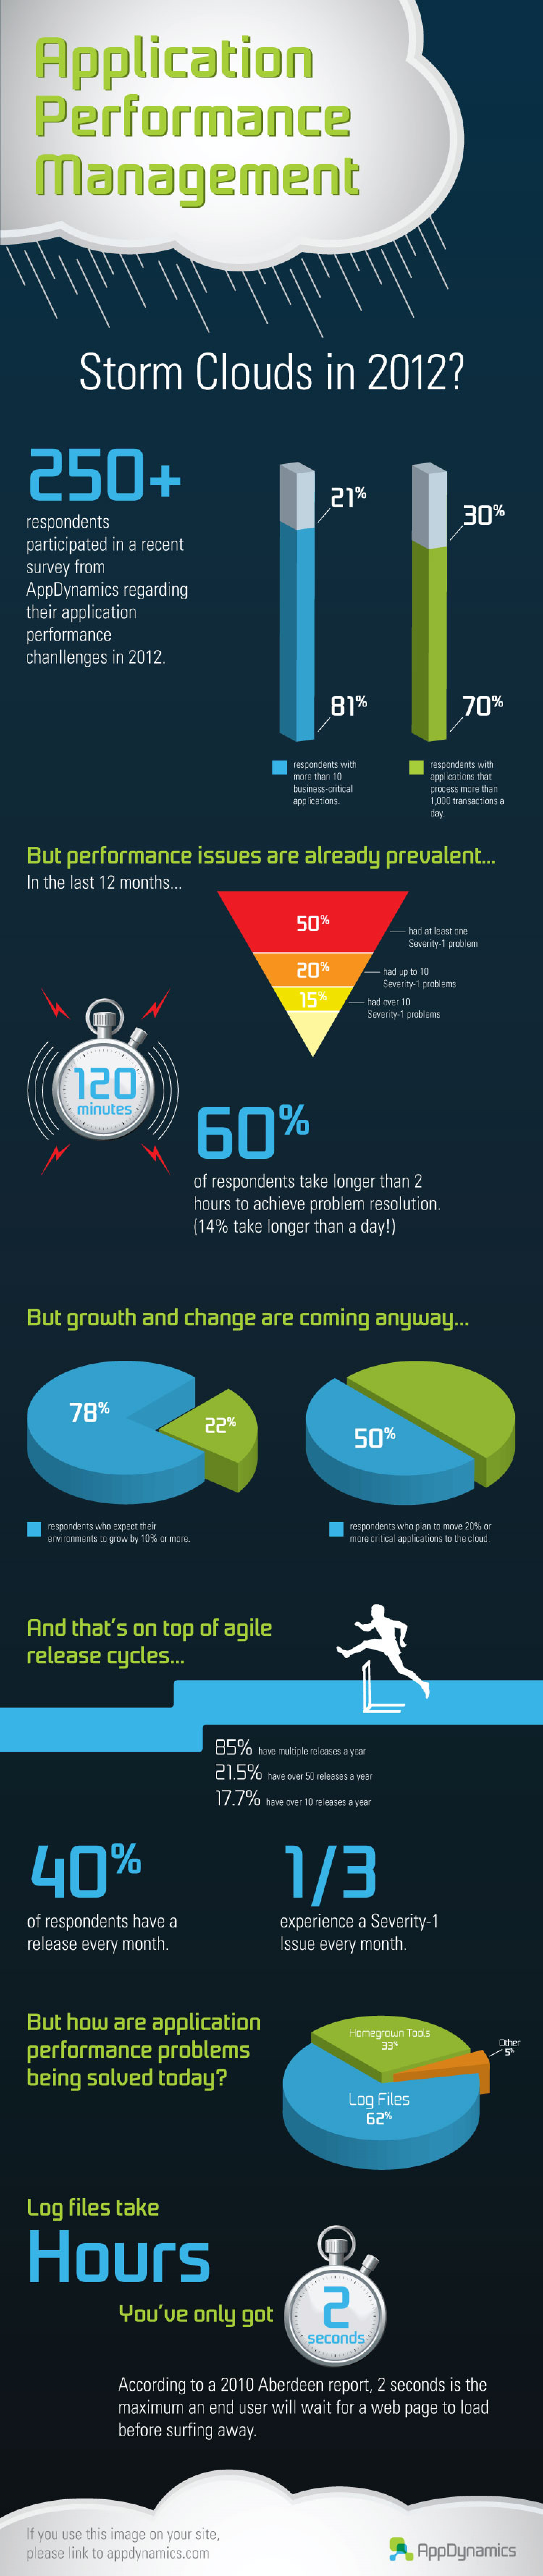 Storm Clouds in 2012? Infographic